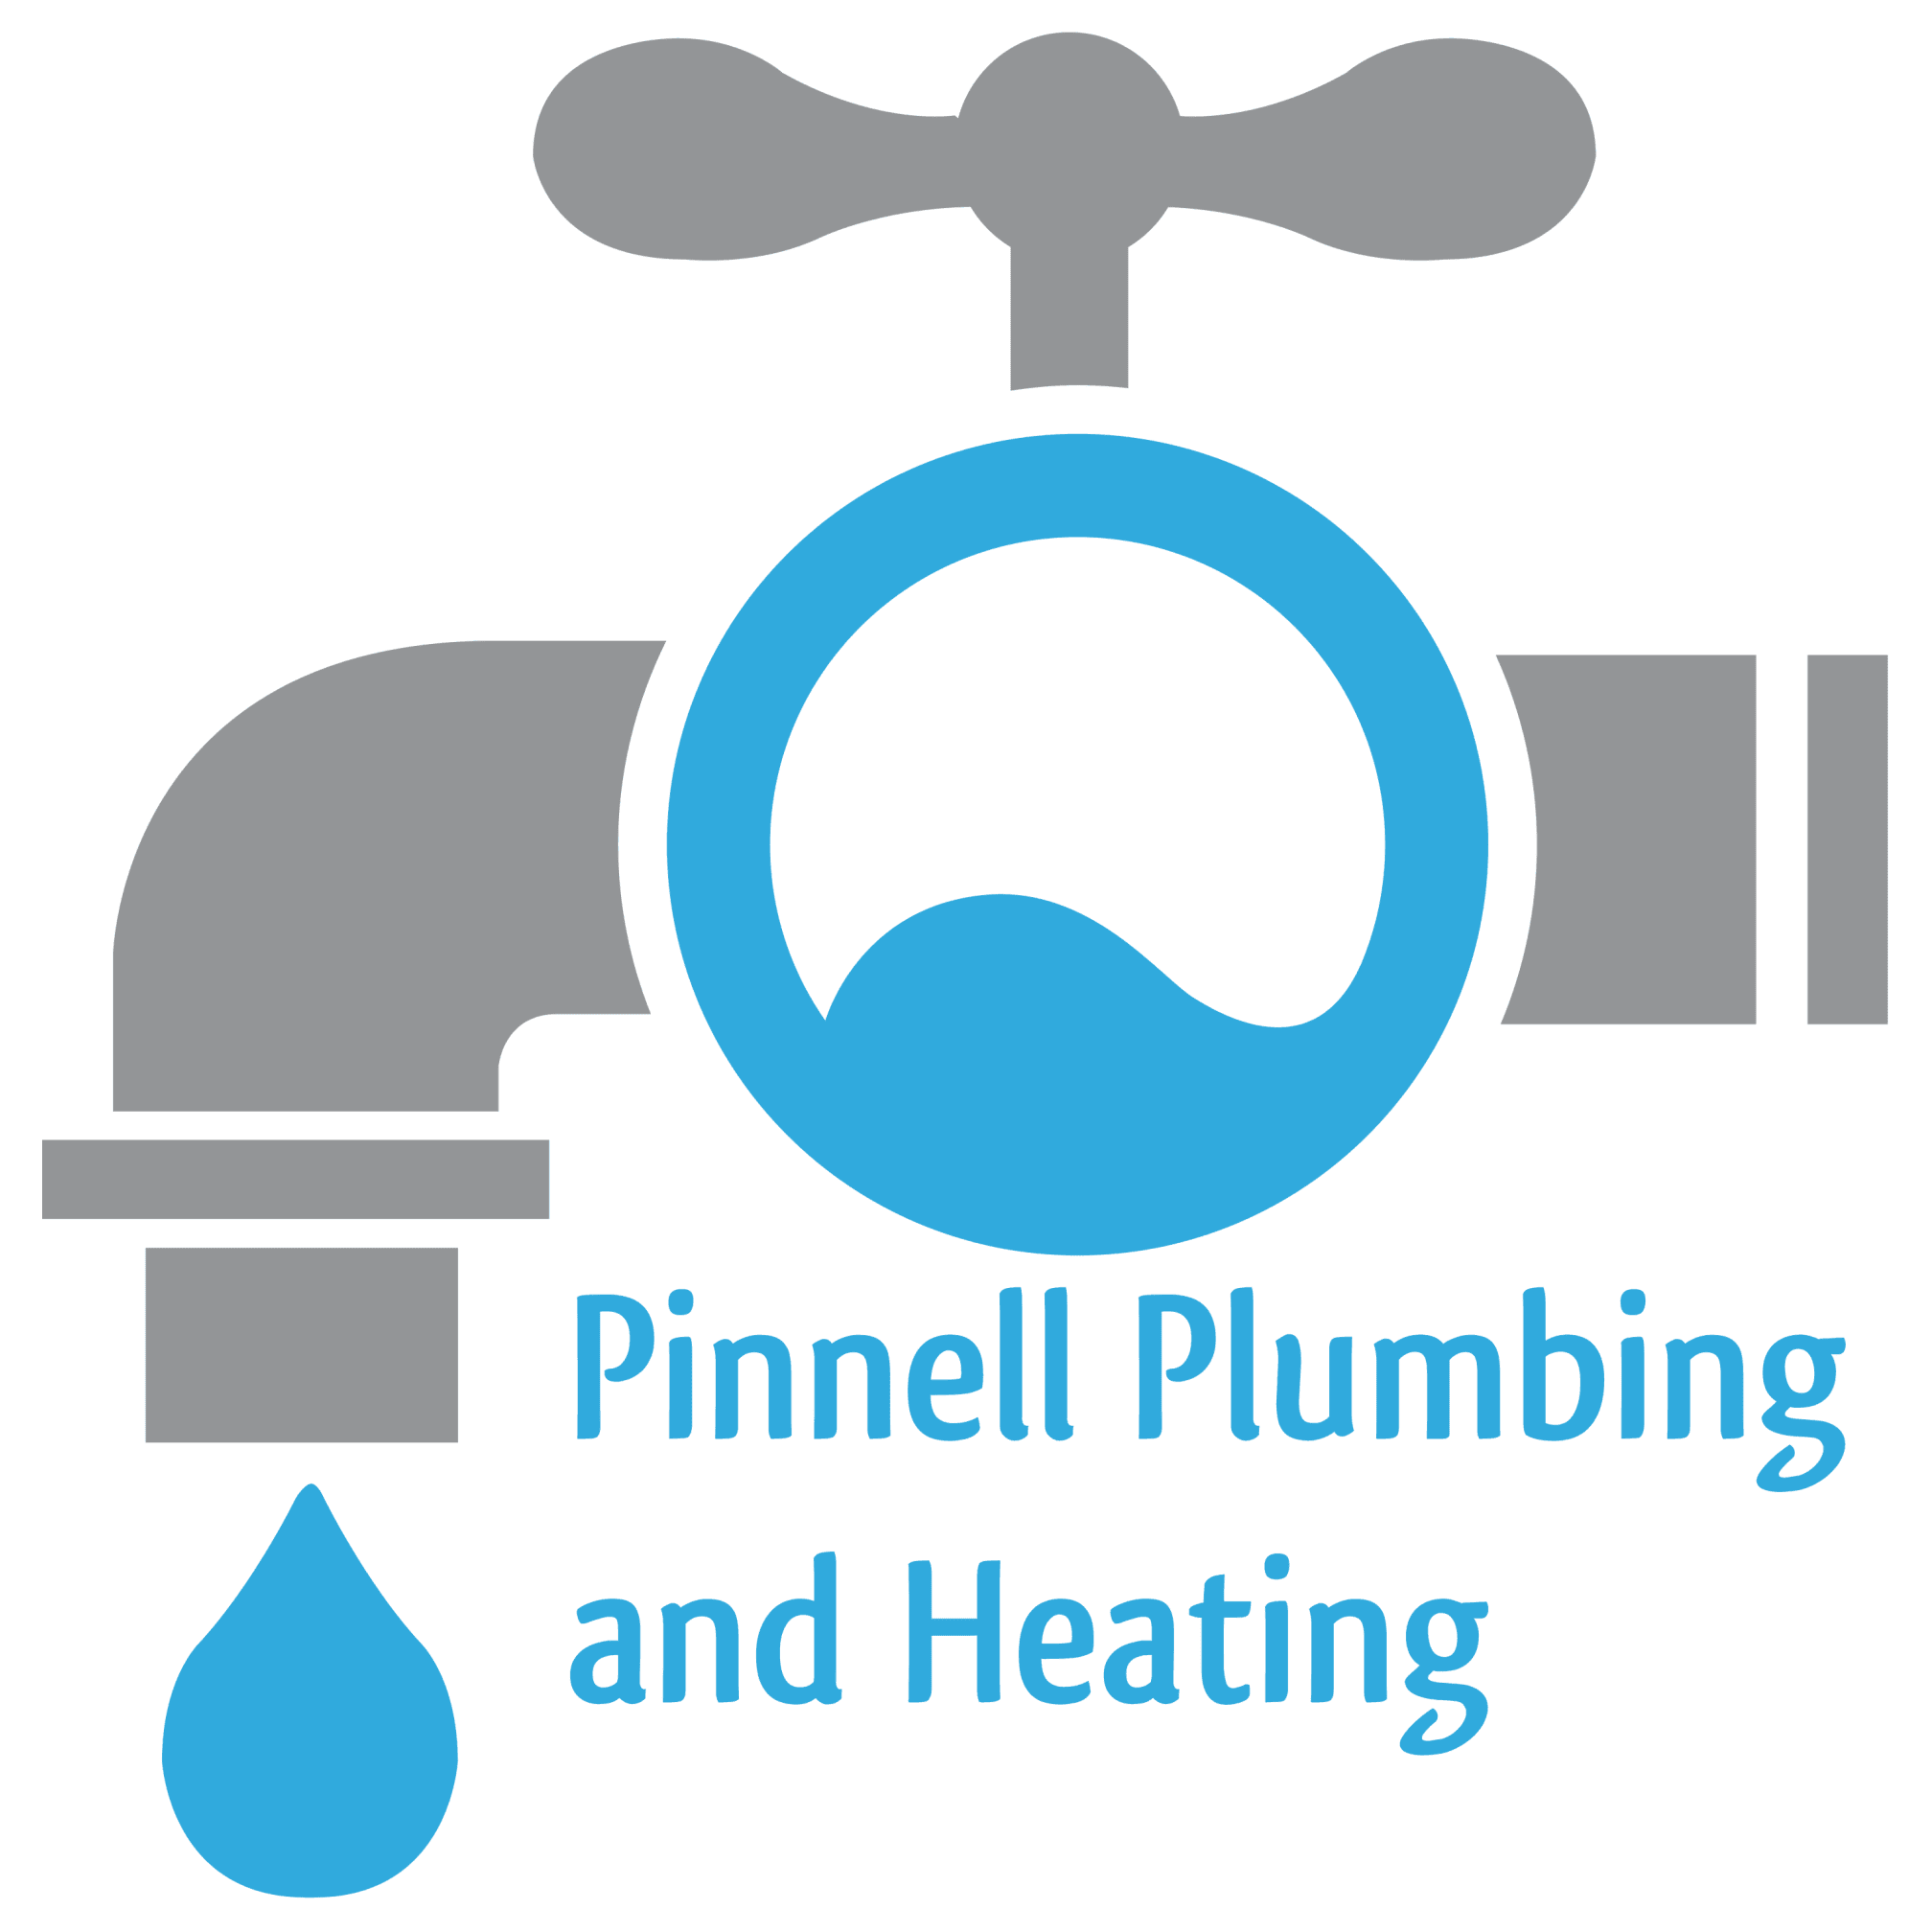 Pinnell Plumbing & Heating - Bristol, Gloucestershire BS32 4DD - 07976 352525 | ShowMeLocal.com